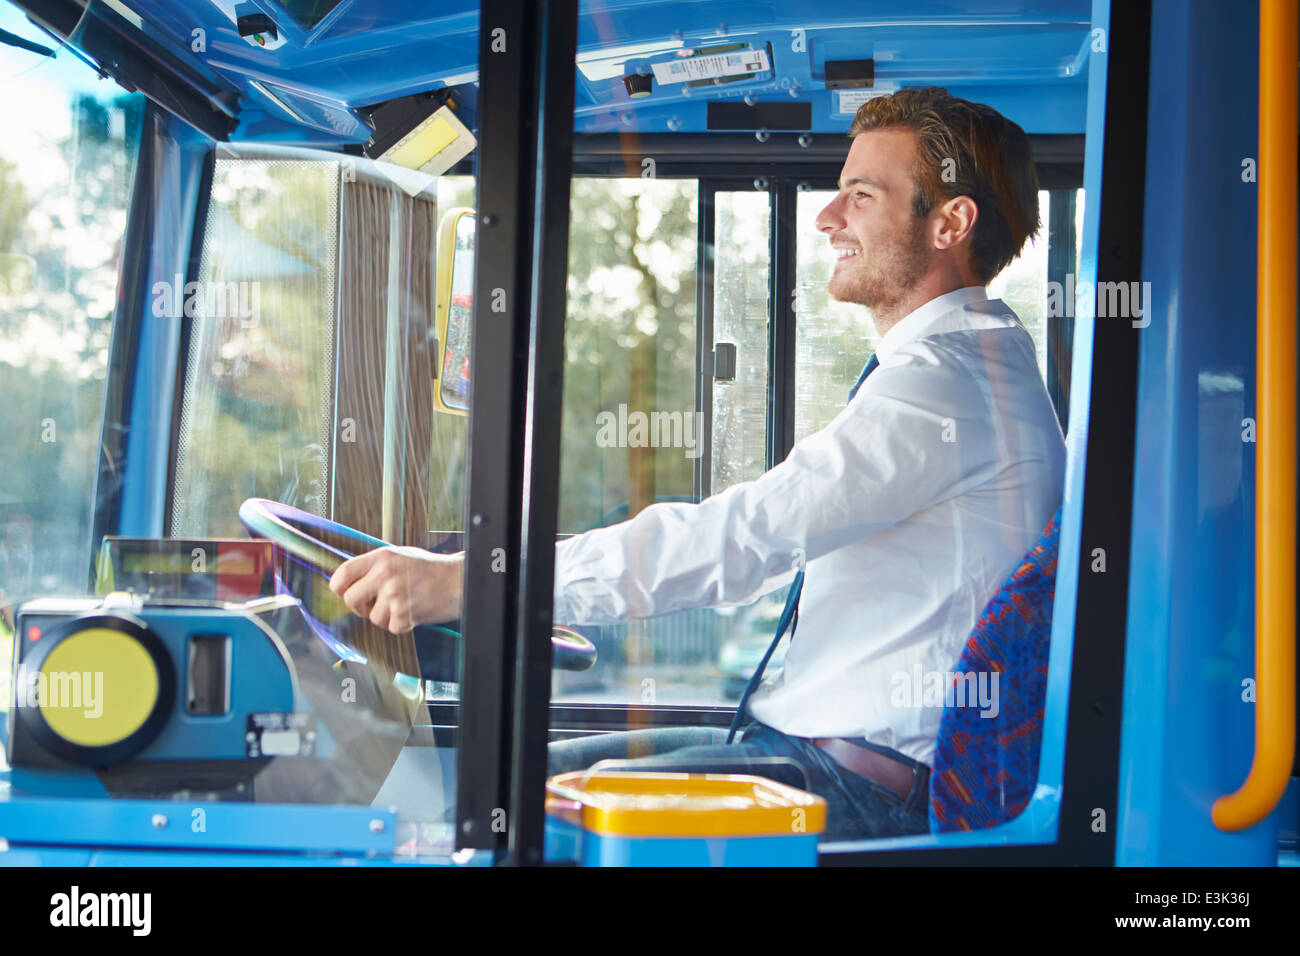 Portrait Of Bus Driver Behind Wheel - Stock Image